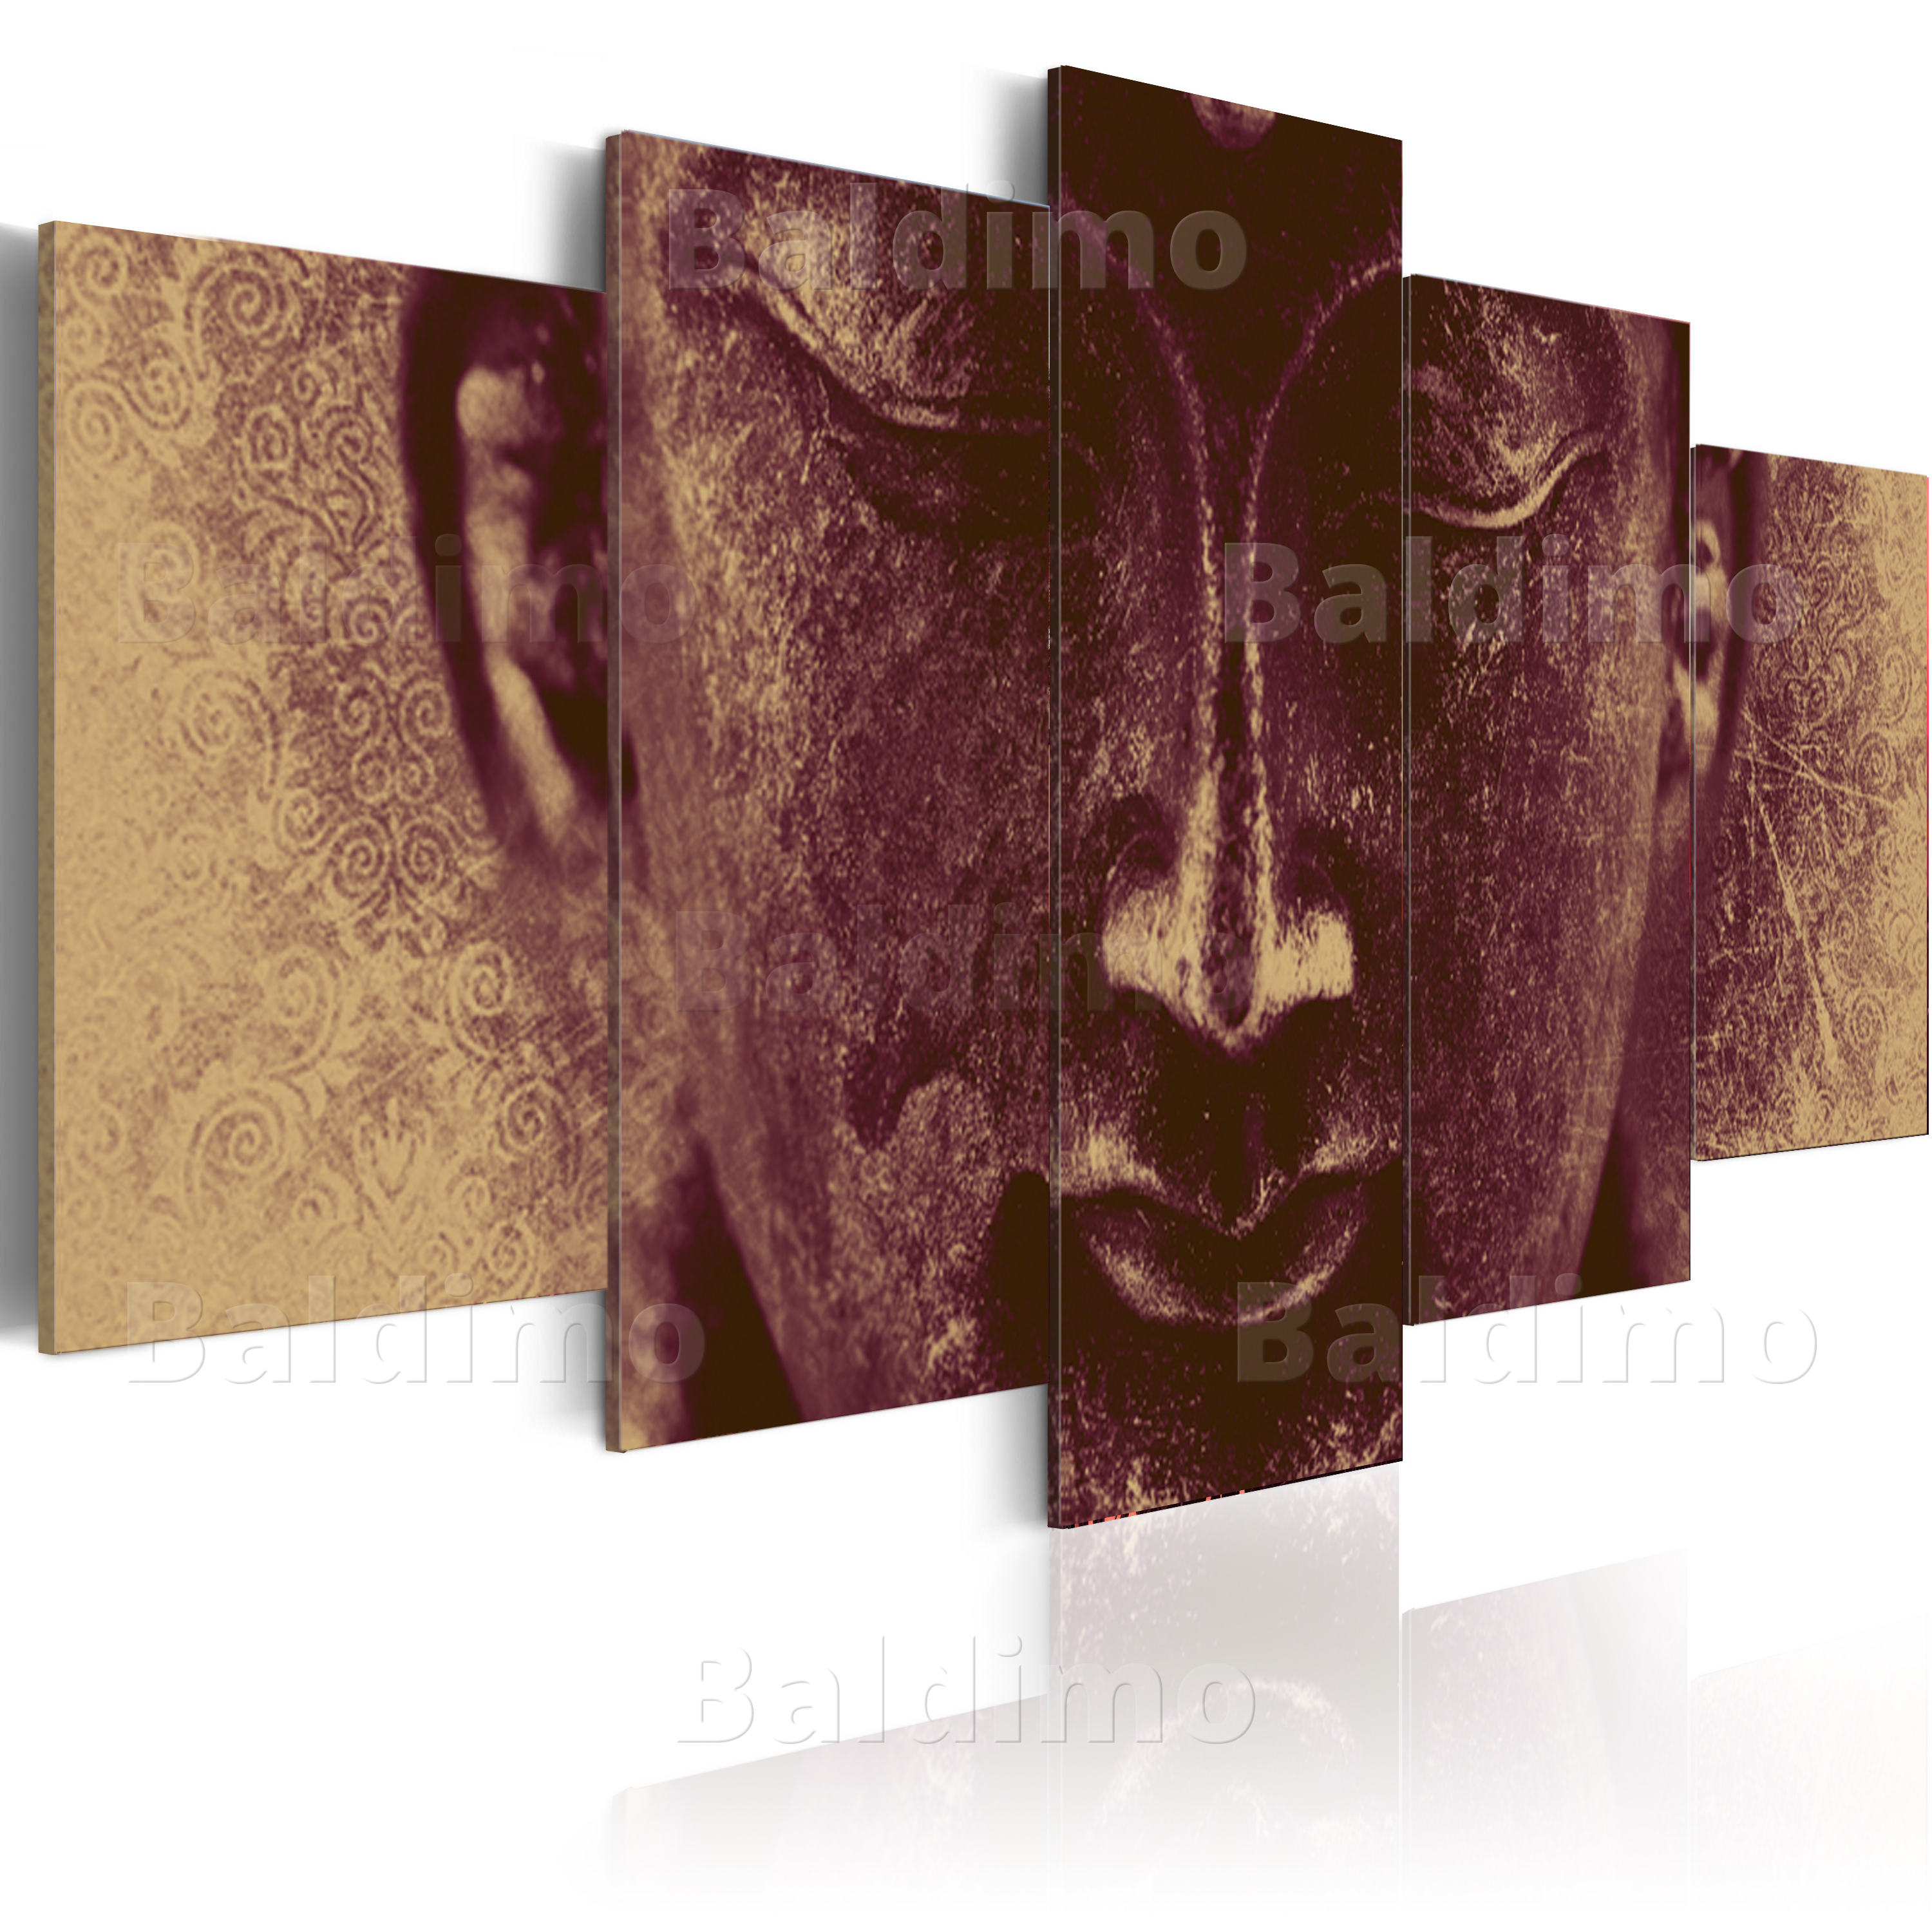 leinwand bilder xxl fertig aufgespannt bild buddha 020113 223 ebay. Black Bedroom Furniture Sets. Home Design Ideas